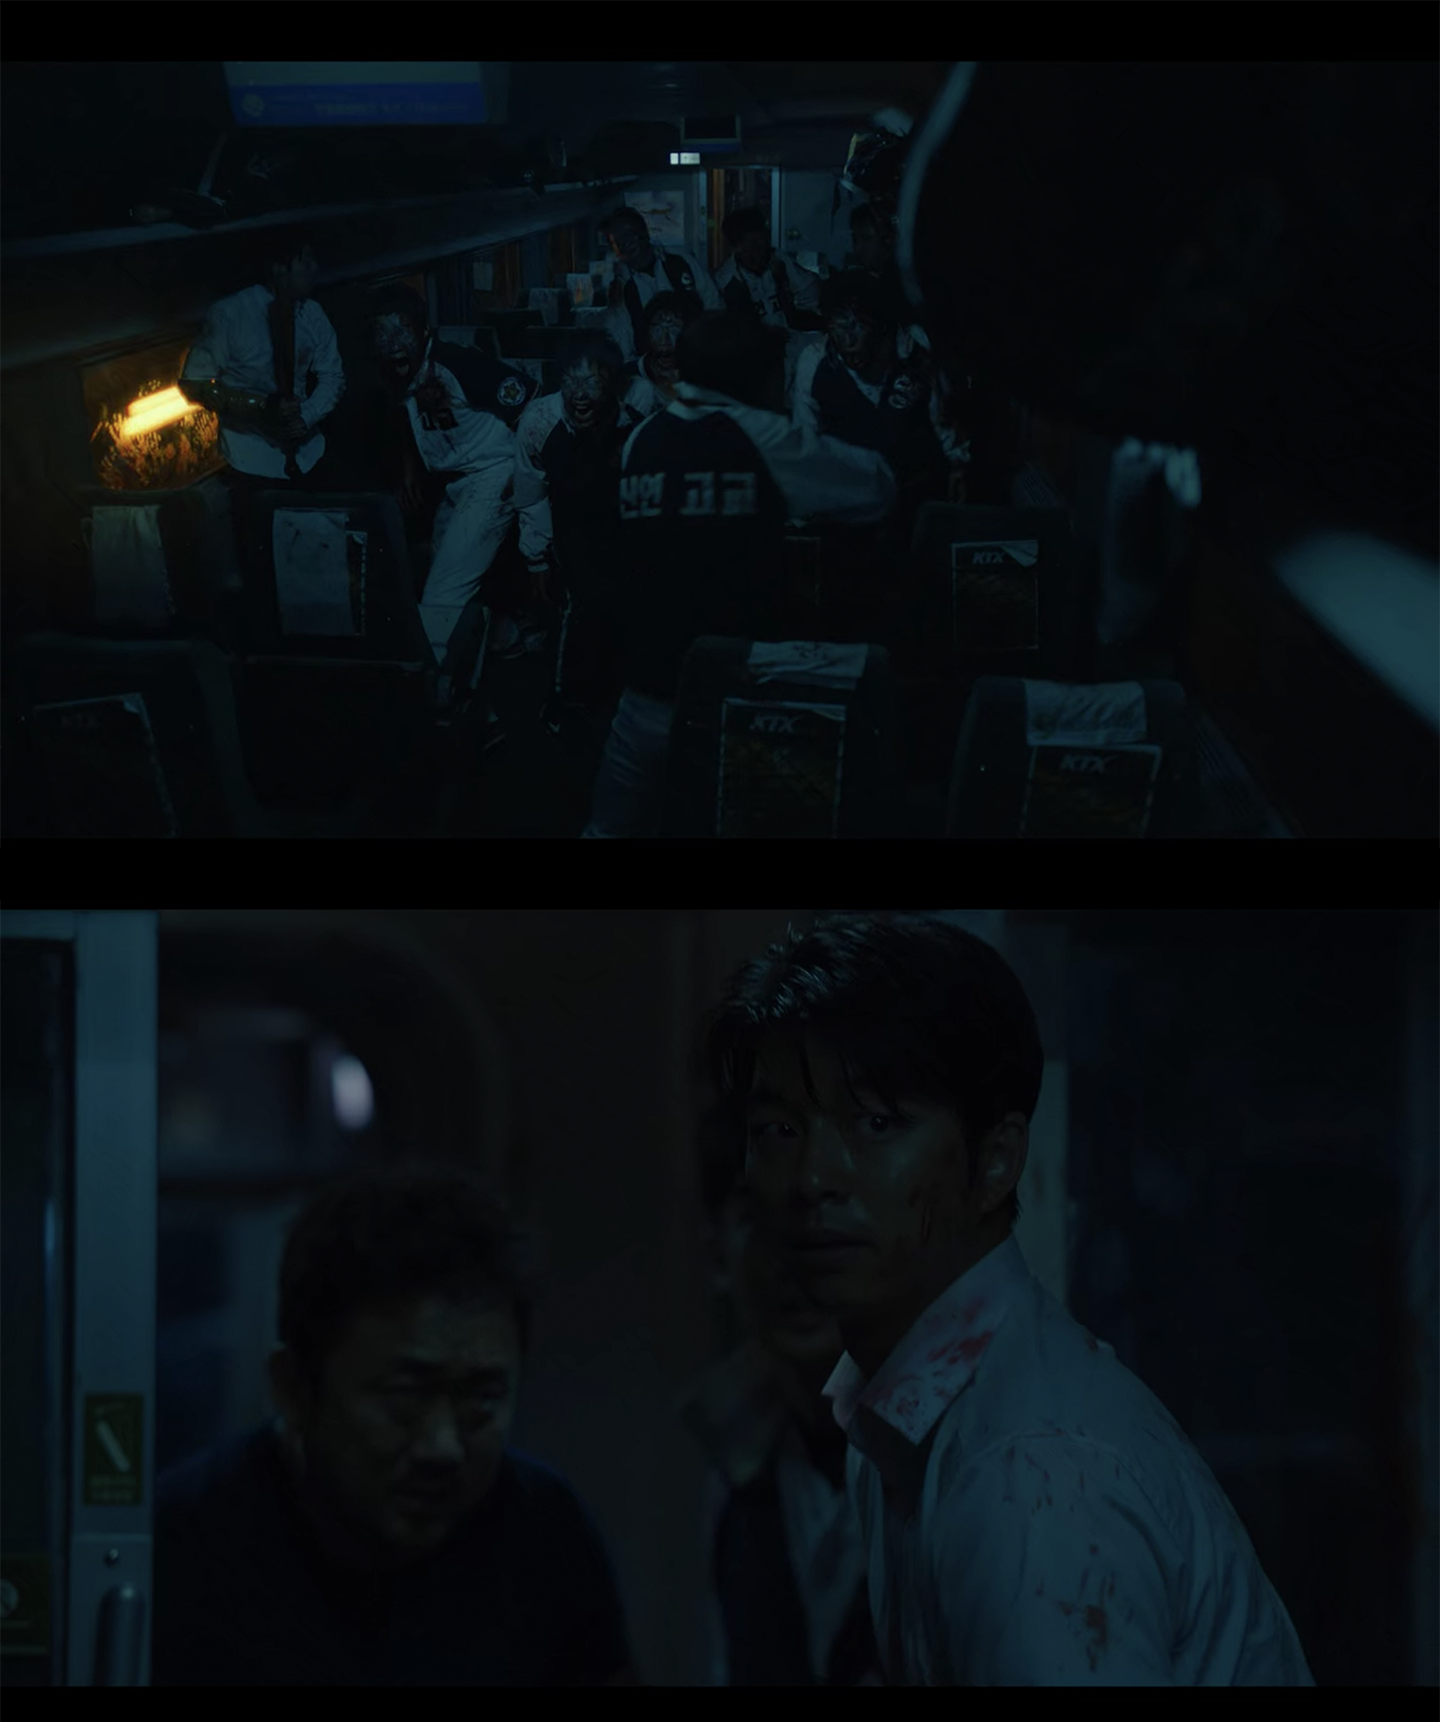 dark scenes from korean zombie movie train to busan, zombies can't see in the dark, so they only follow sounds